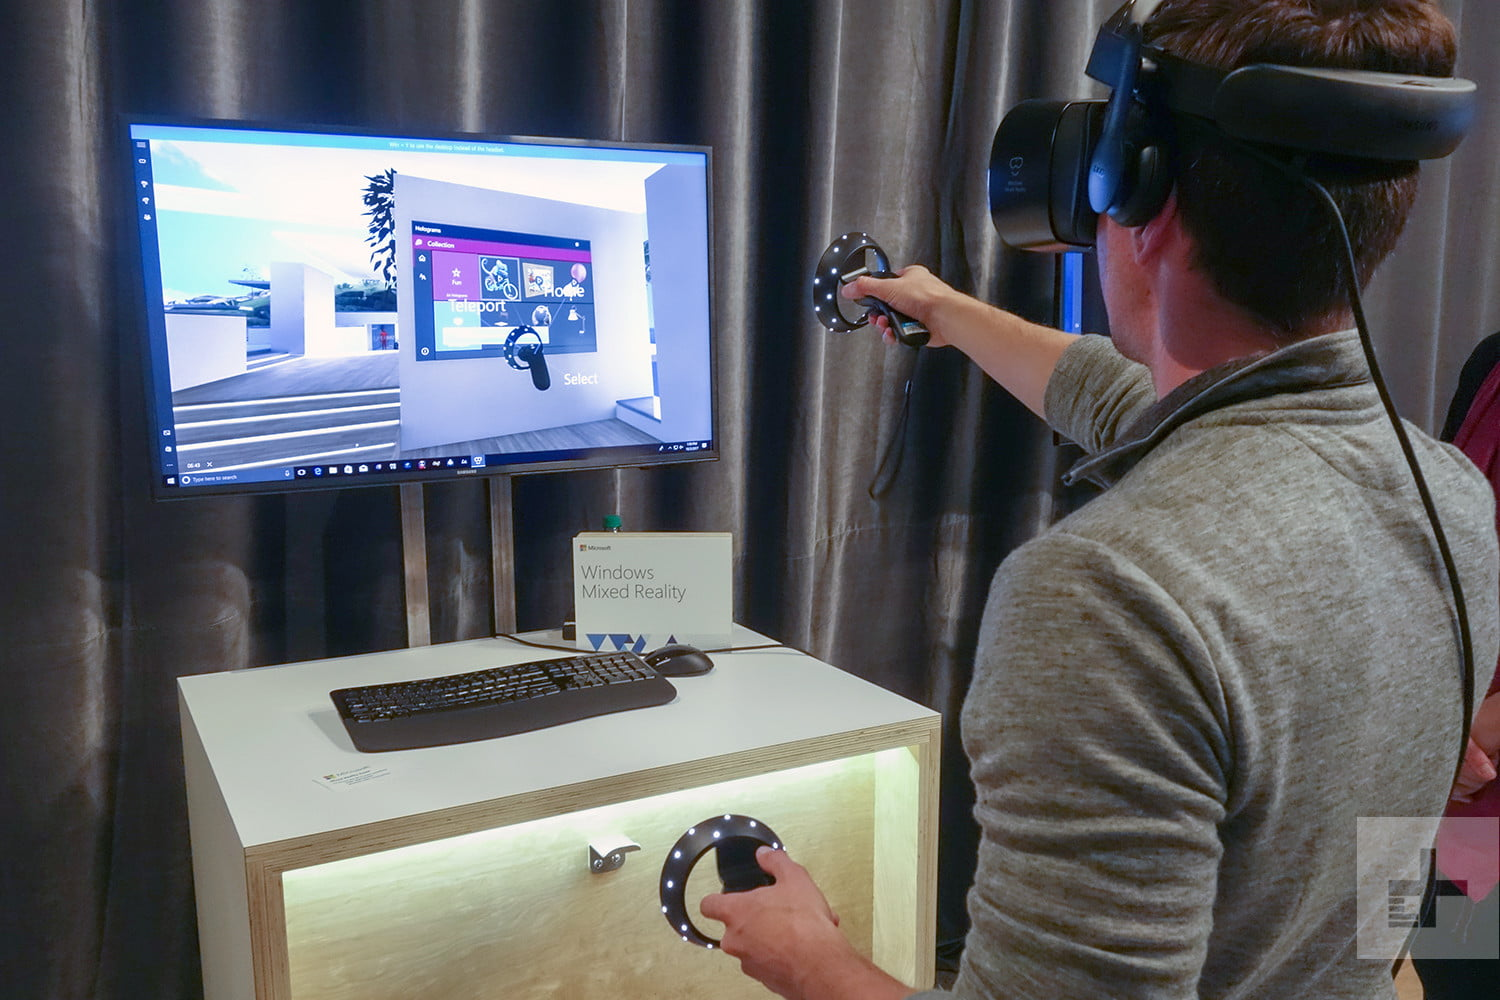 Your Next Vr Headset Will Connect Over A Single Usb C Cable Quickar Electronics How To Hook Up Leds Choosing The Correct Wiring Digital Trends